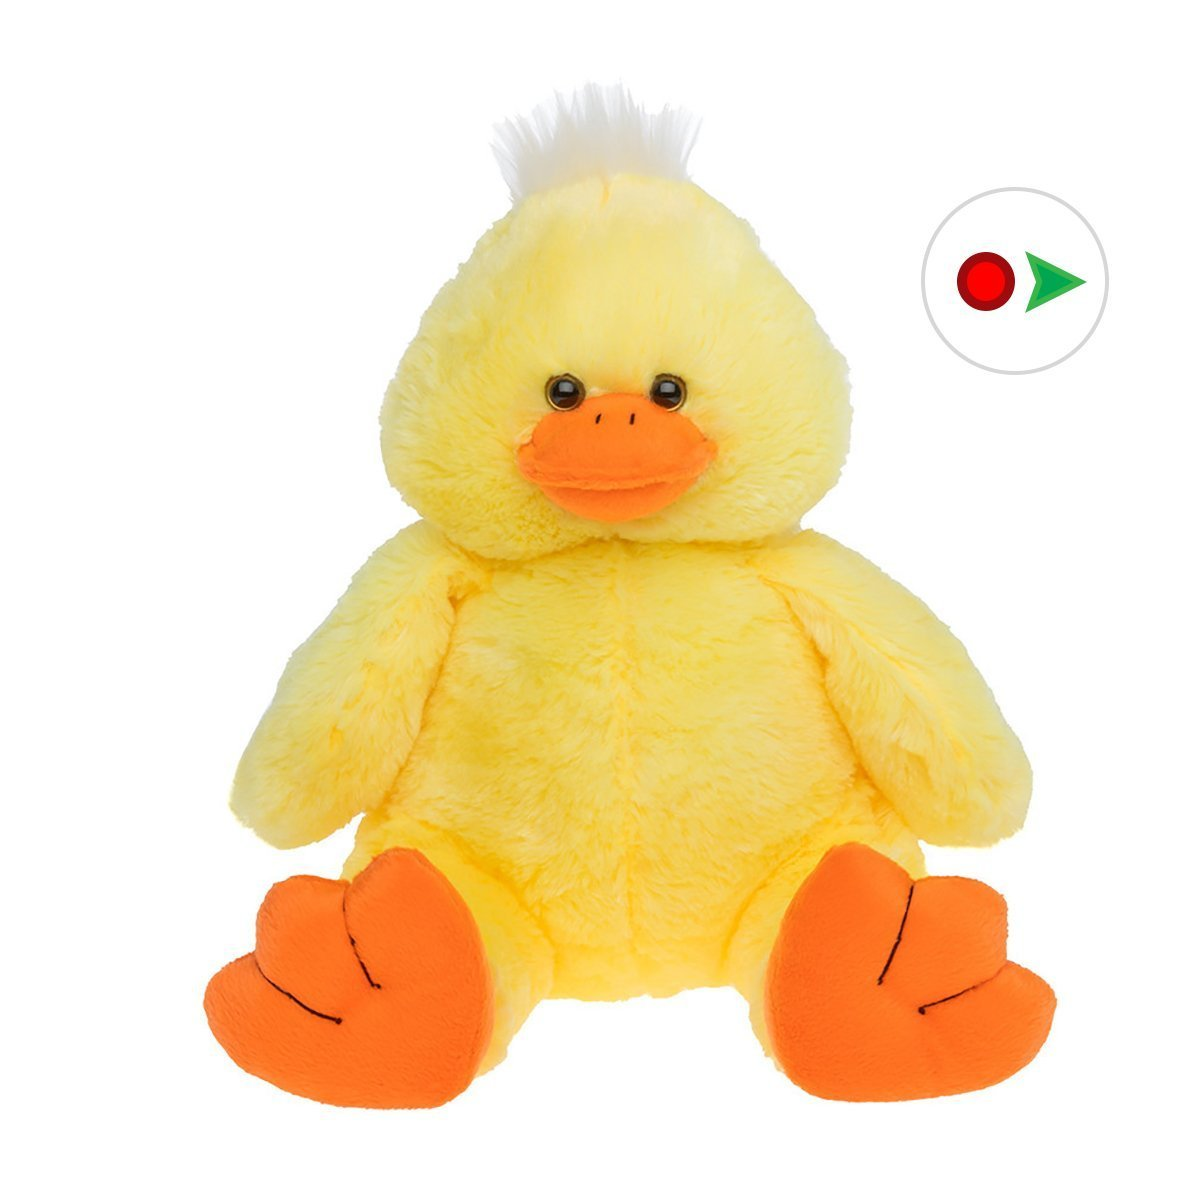 Record Your Own Plush 16 inch Yellow Plush Duck - Ready To Love In A Few Easy Steps